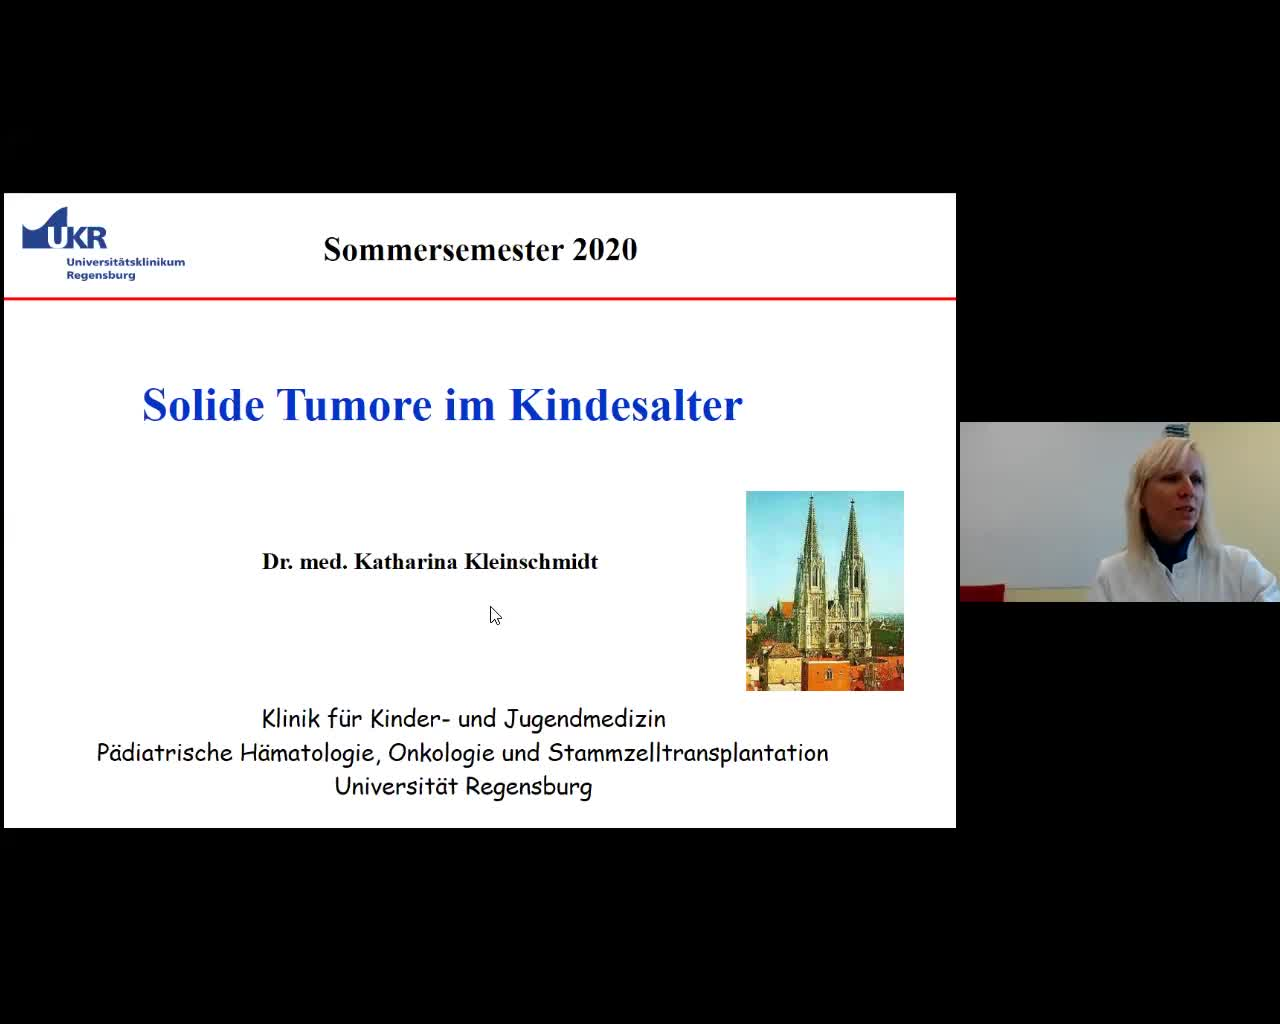 Solide Tumore im Kindesalter